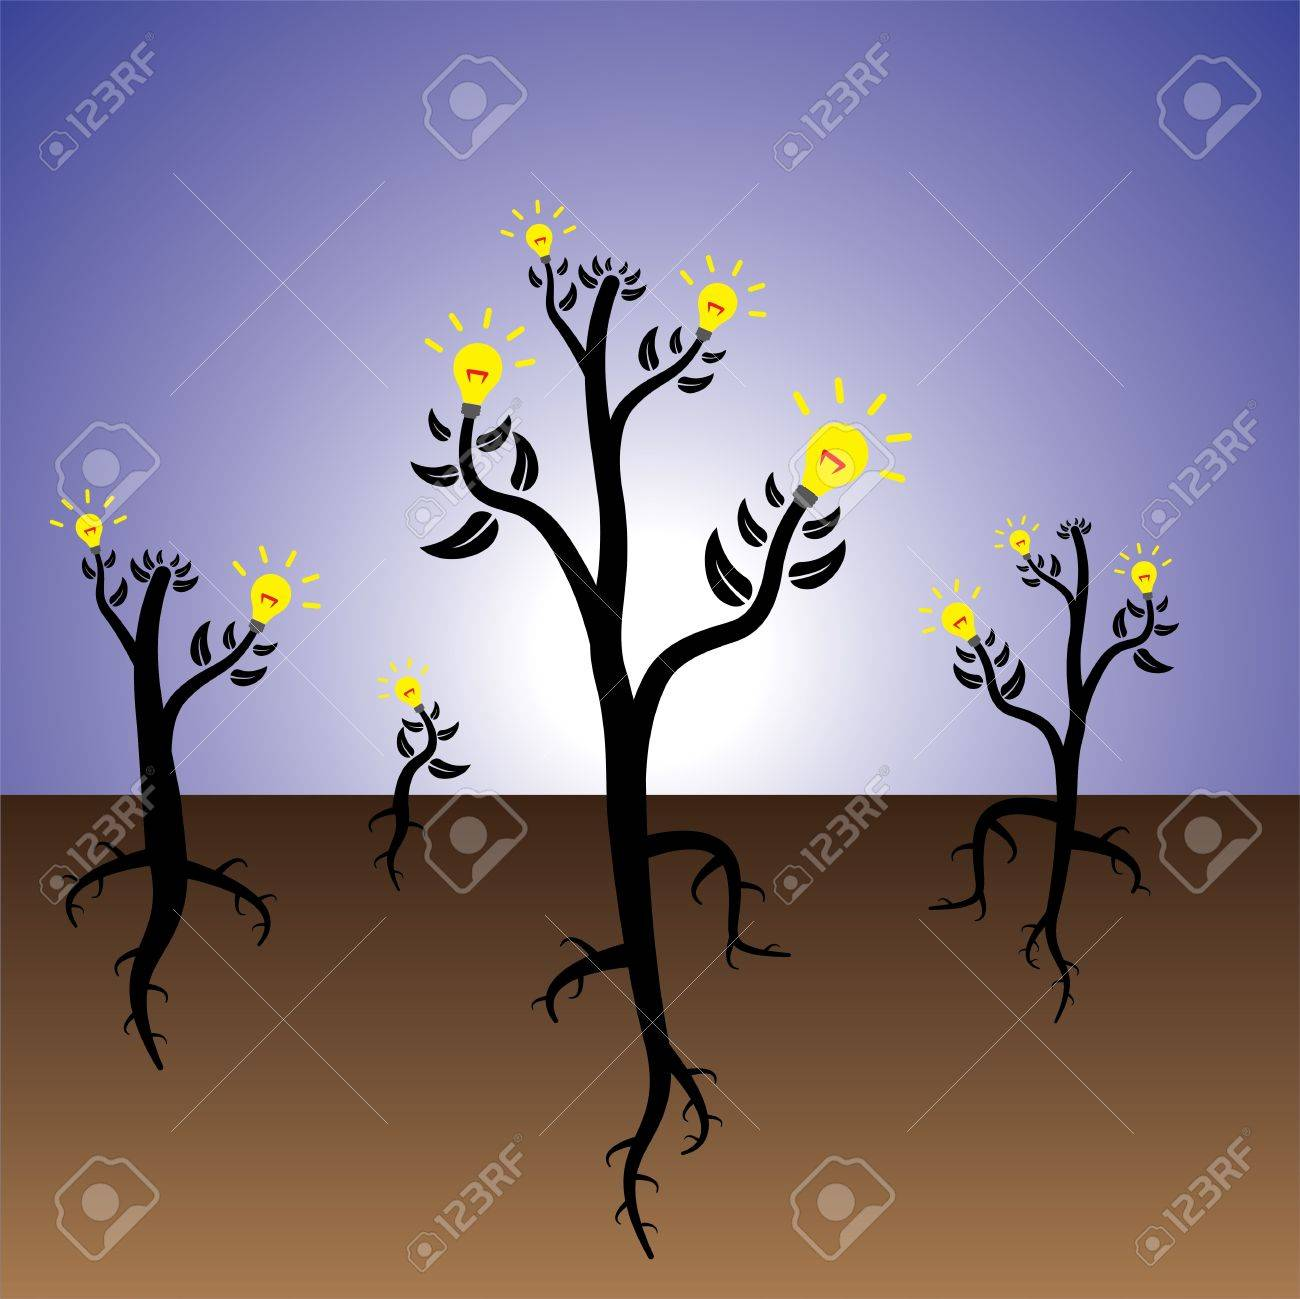 Concept of plants of ideas and solution growing in fertile mind. Stock Vector - 13769734